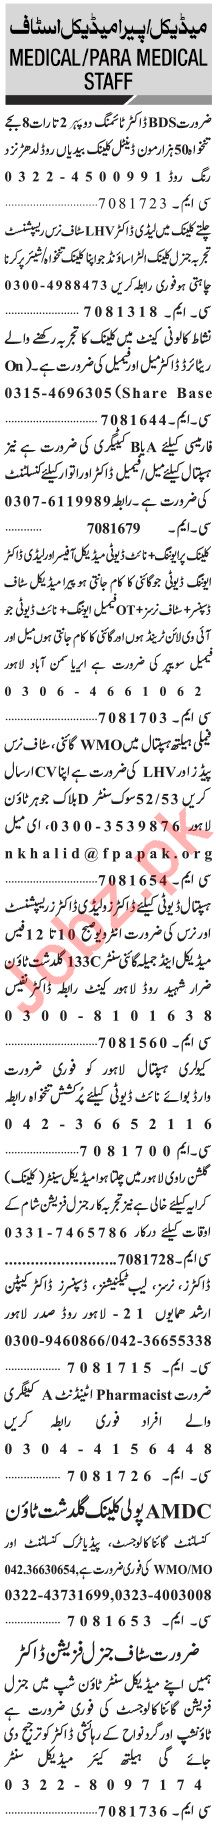 Jang Sunday Classified Ads 22nd March 2020 for Medical Staff